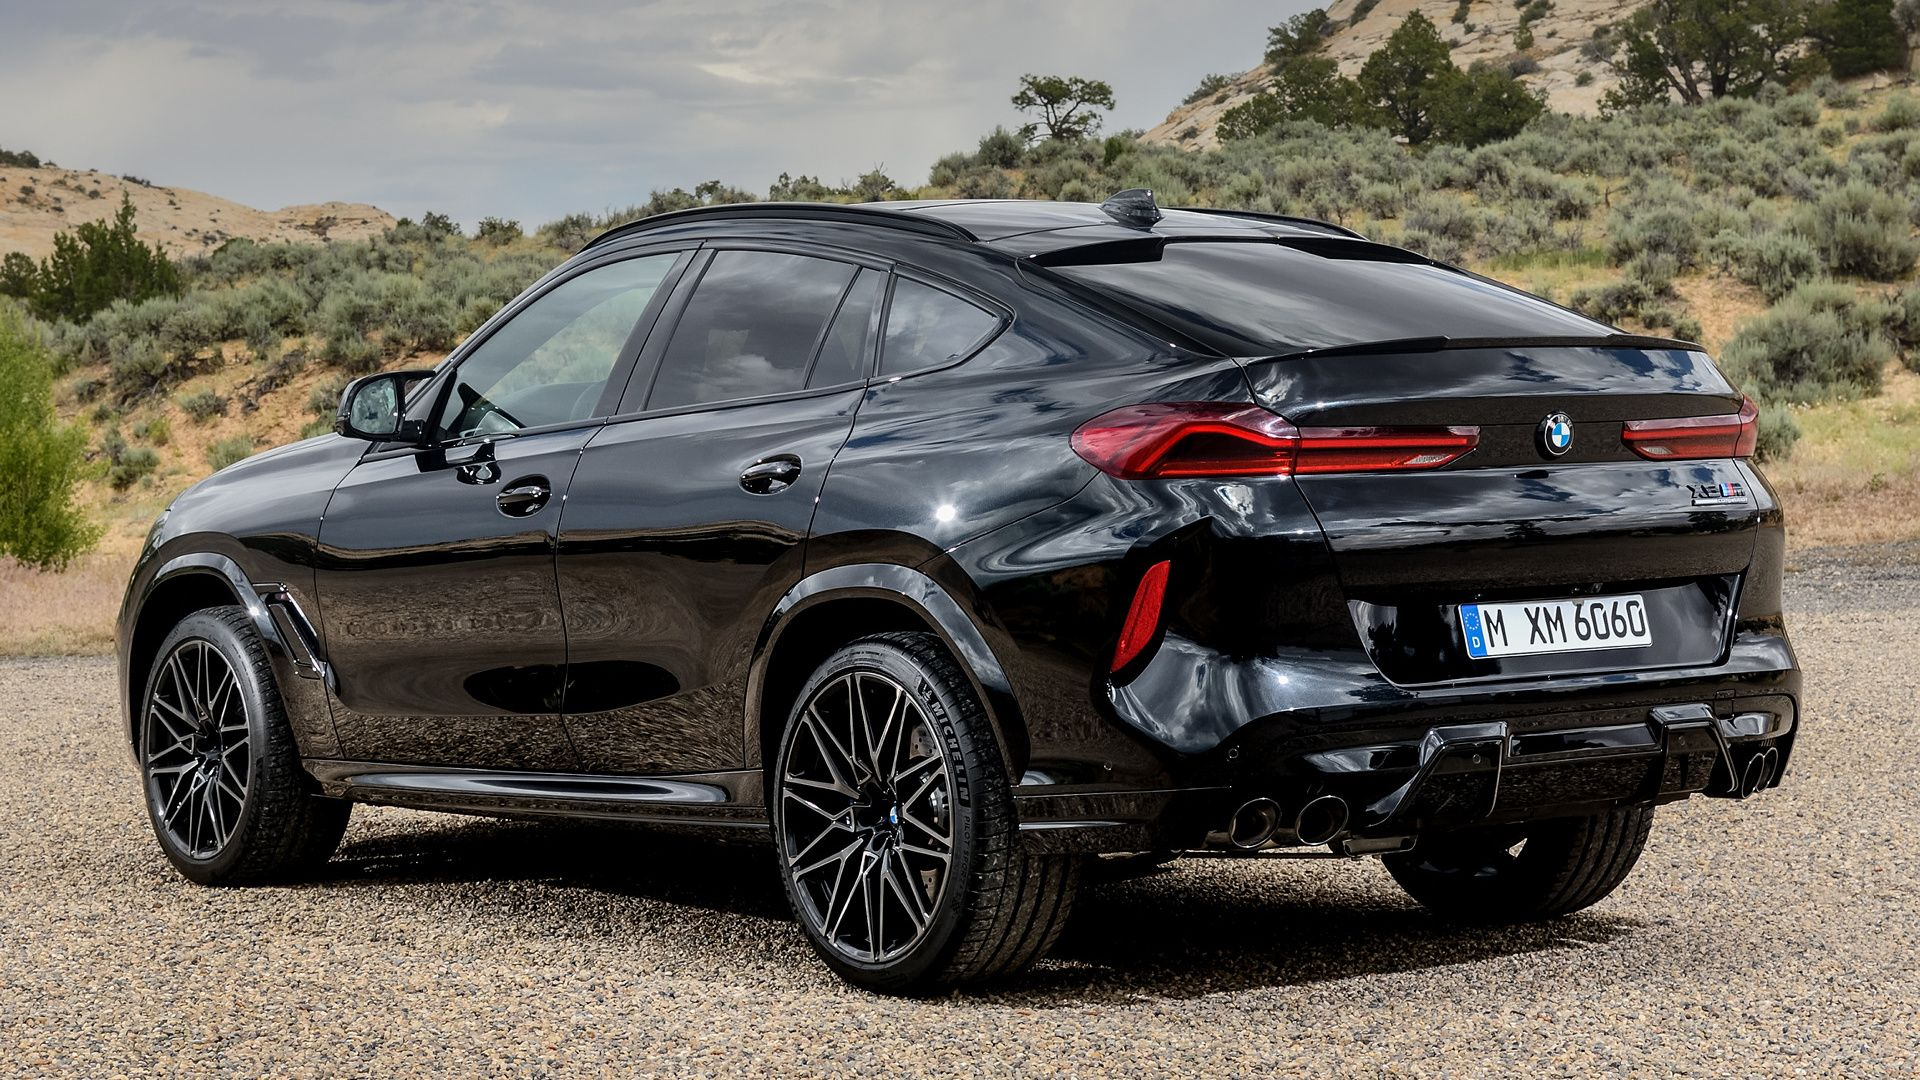 BMW Wallpapers   Bmw x6, Crossover cars, Bmw wallpapers